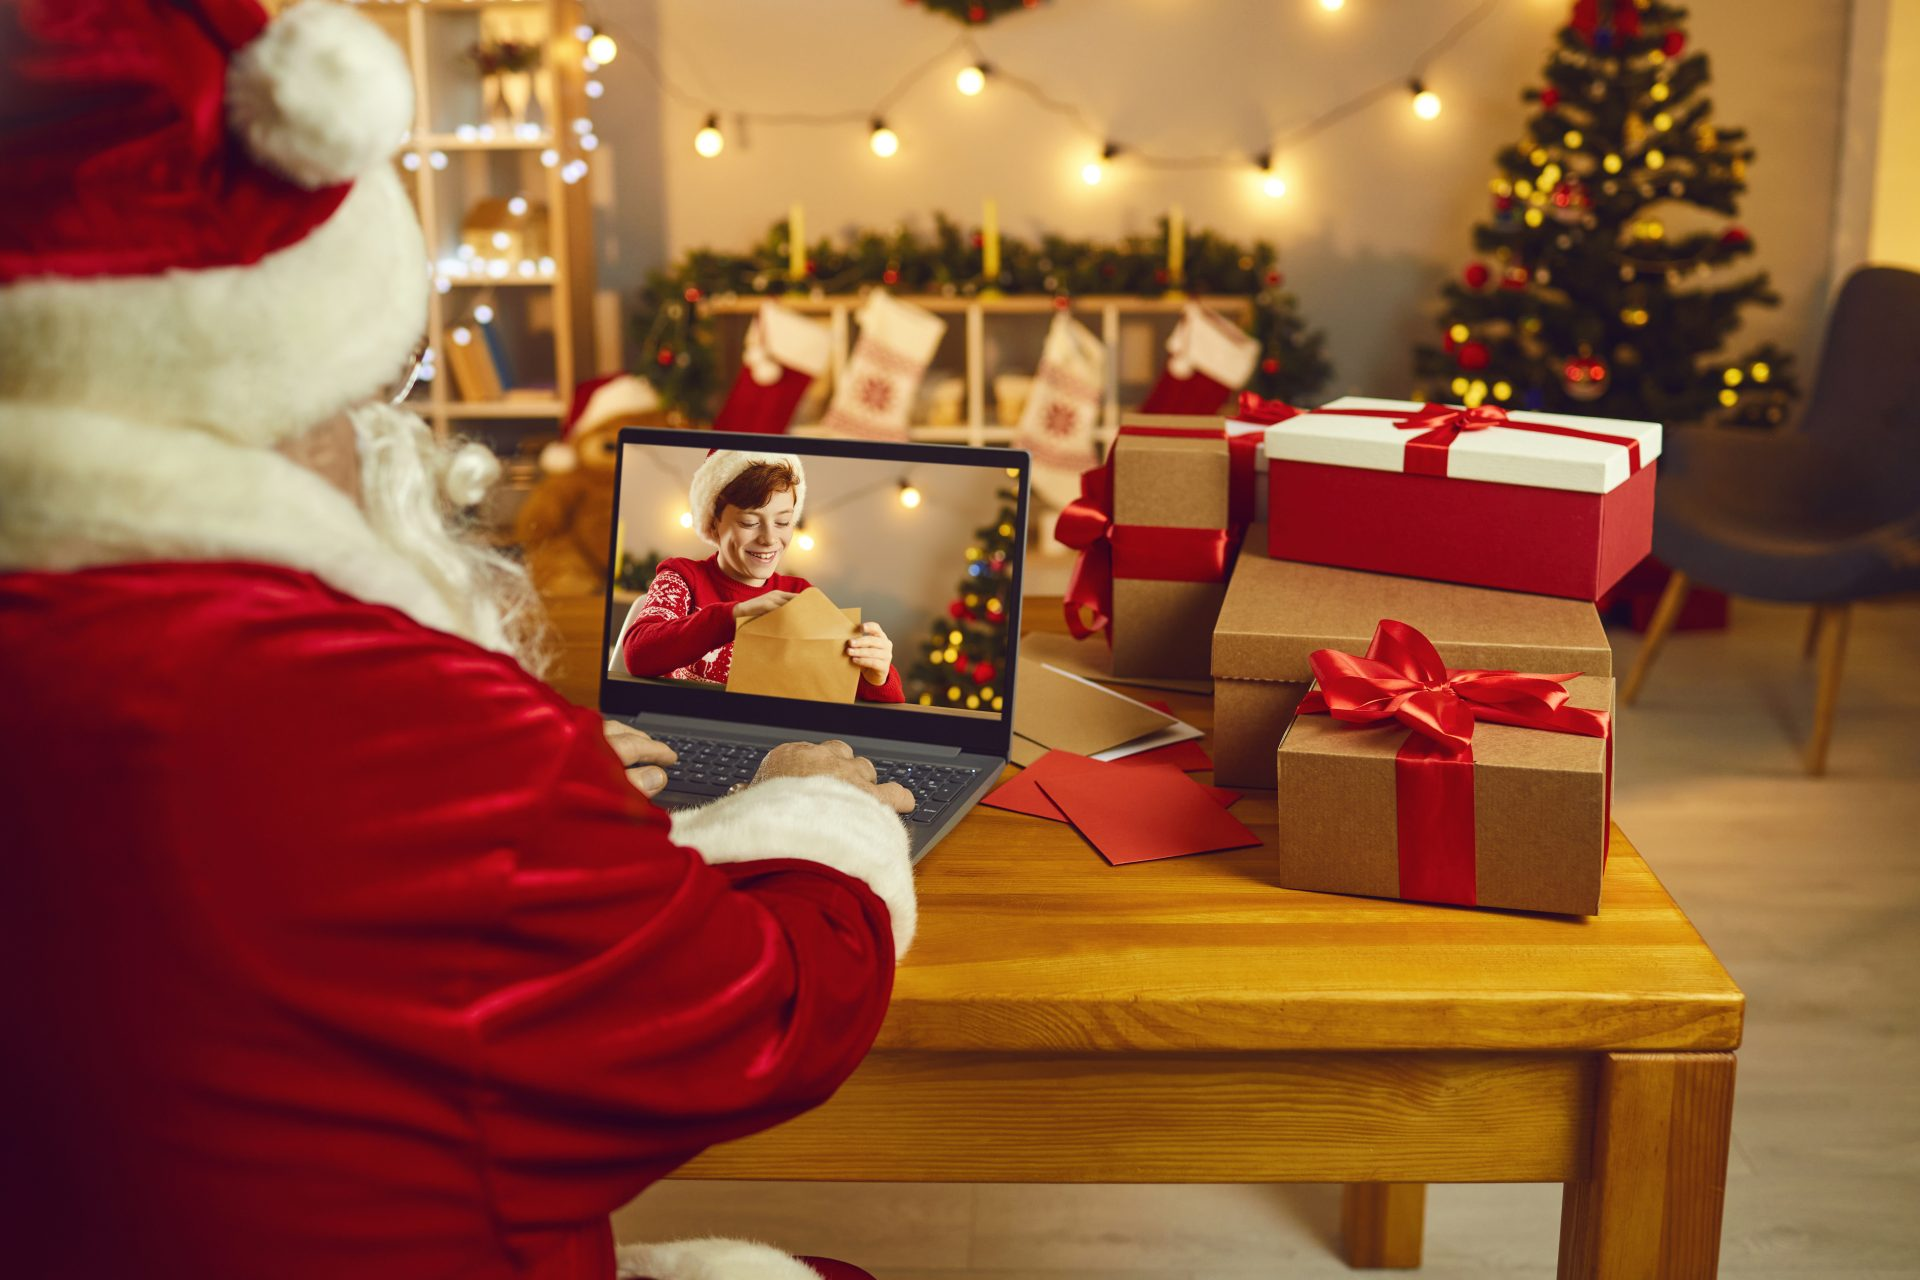 Virtual_Christmas_Staying_Connected_While_We_Are_Apart_During_The_Holidays_Santa_Zoom_Gift_opening